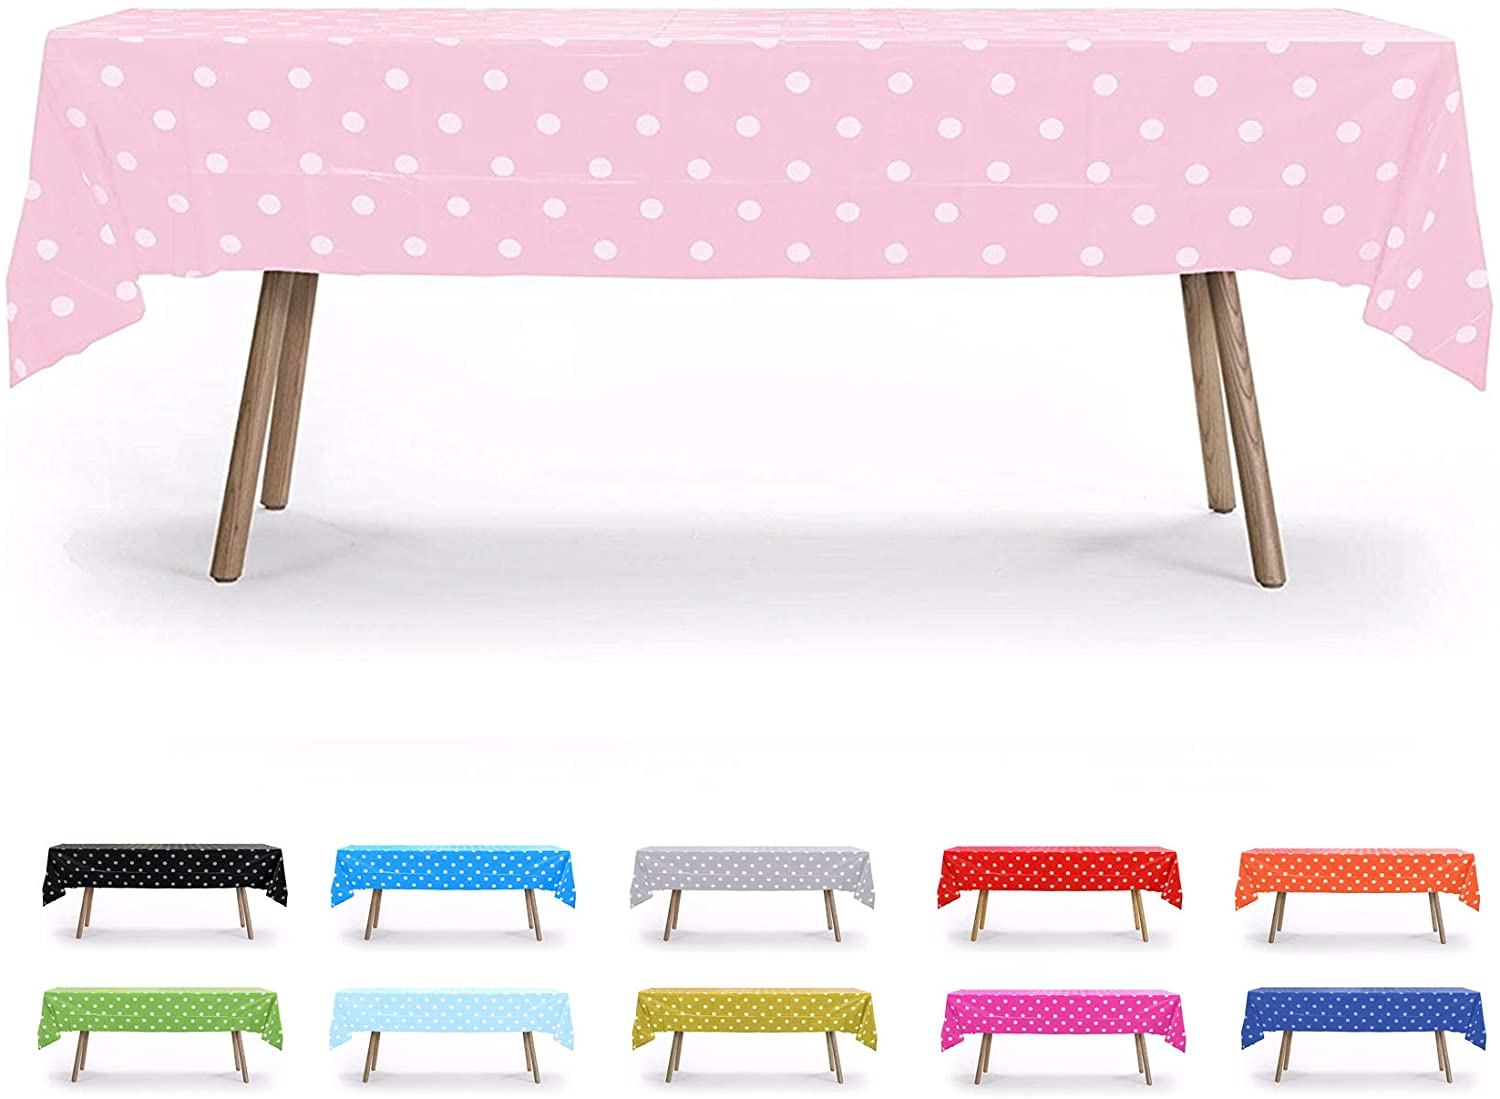 Gift Expressions Table Cloth, 12 Pack, Pink Polka Dot, 54